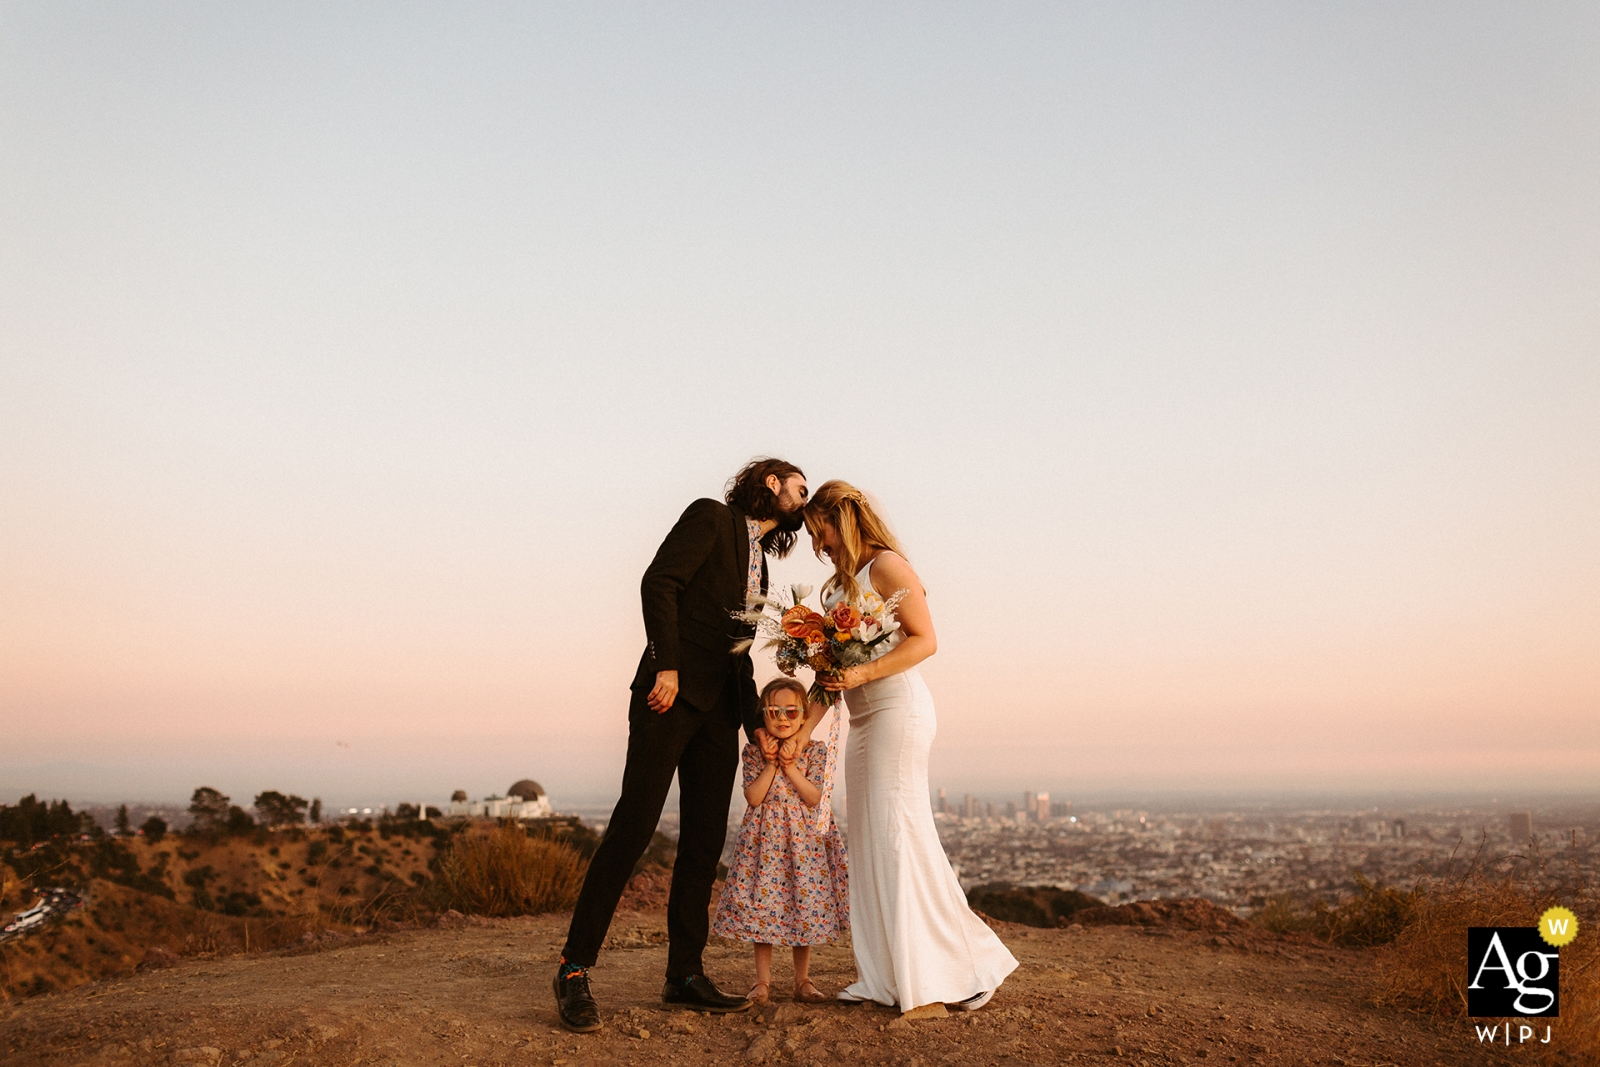 Griffith Park, Los Angeles, CA wedding portrait in the hills | Little family elopement